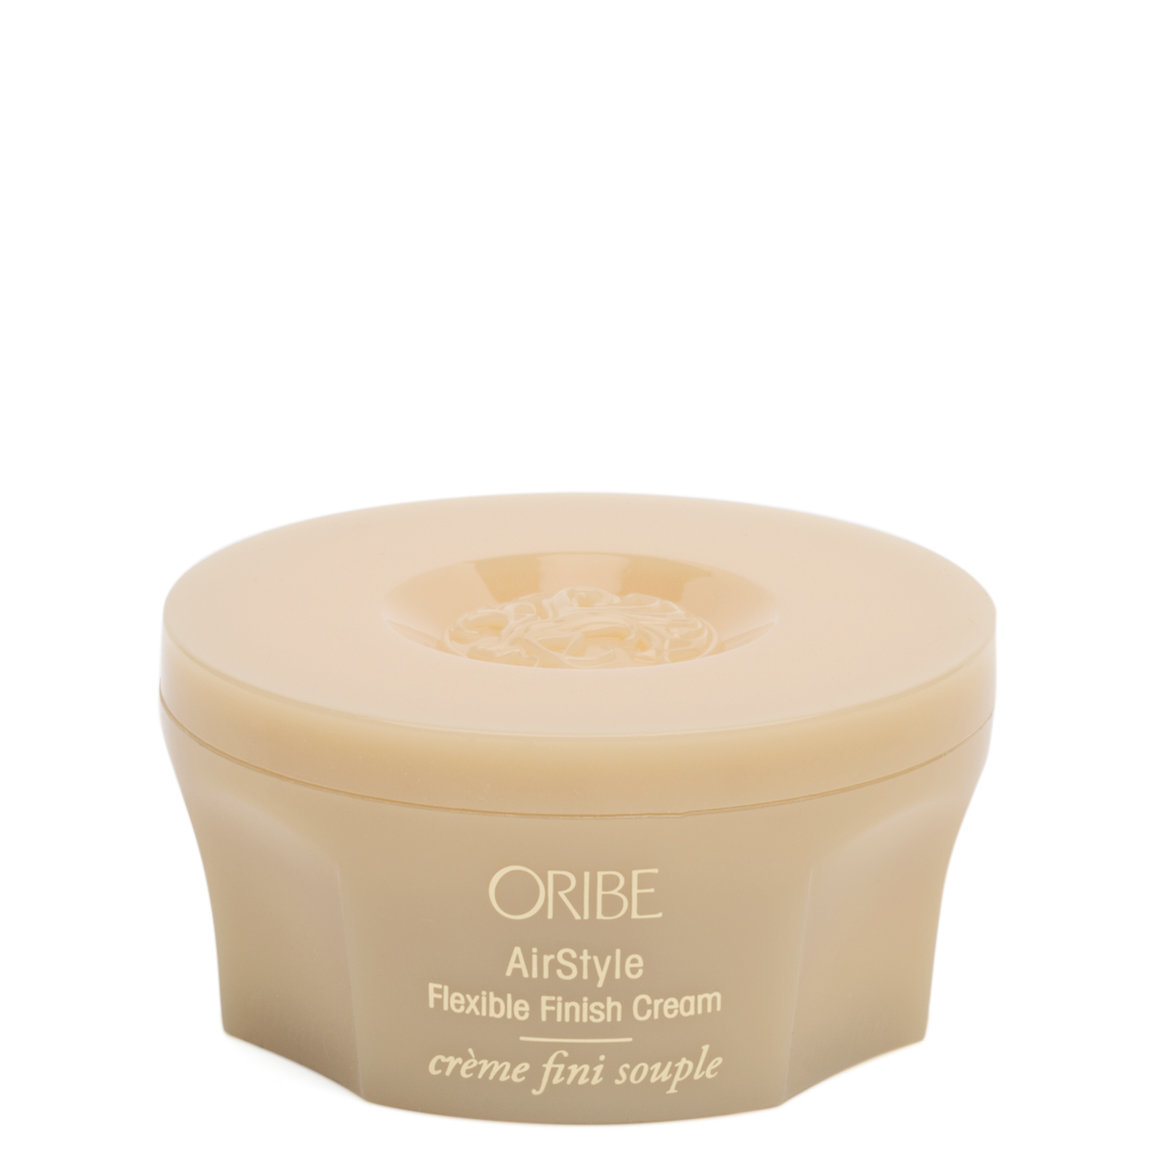 Oribe Airstyle Flexible Finish Cream product smear.